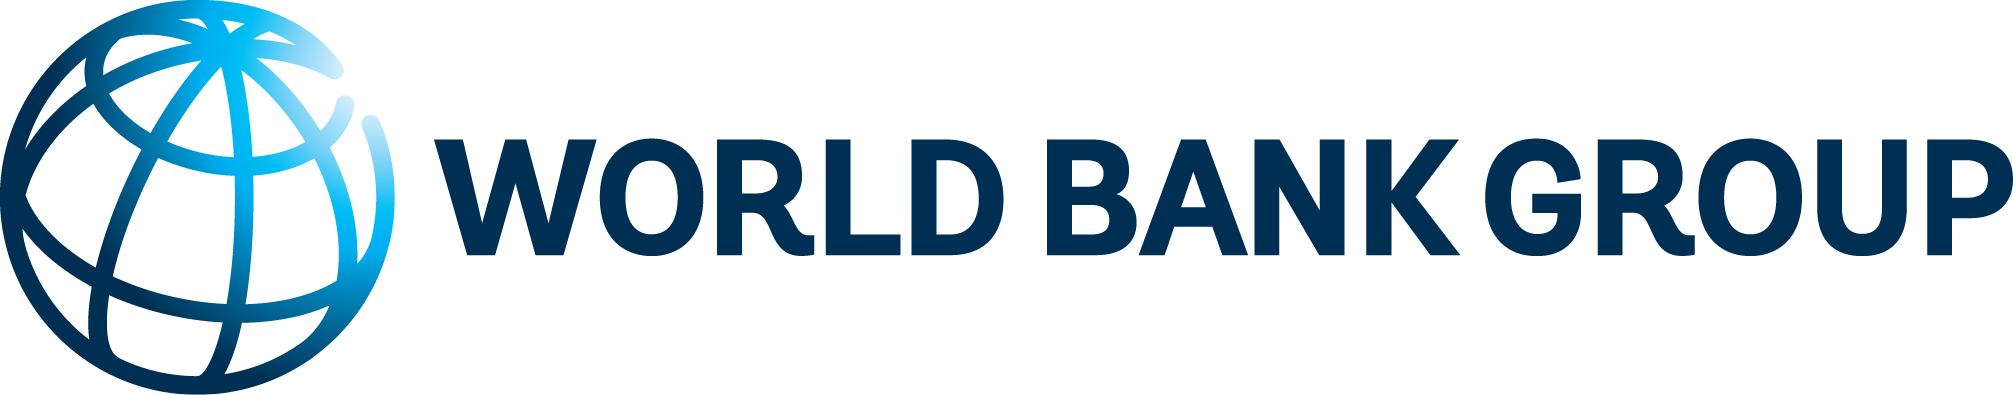 logo of Worldbank